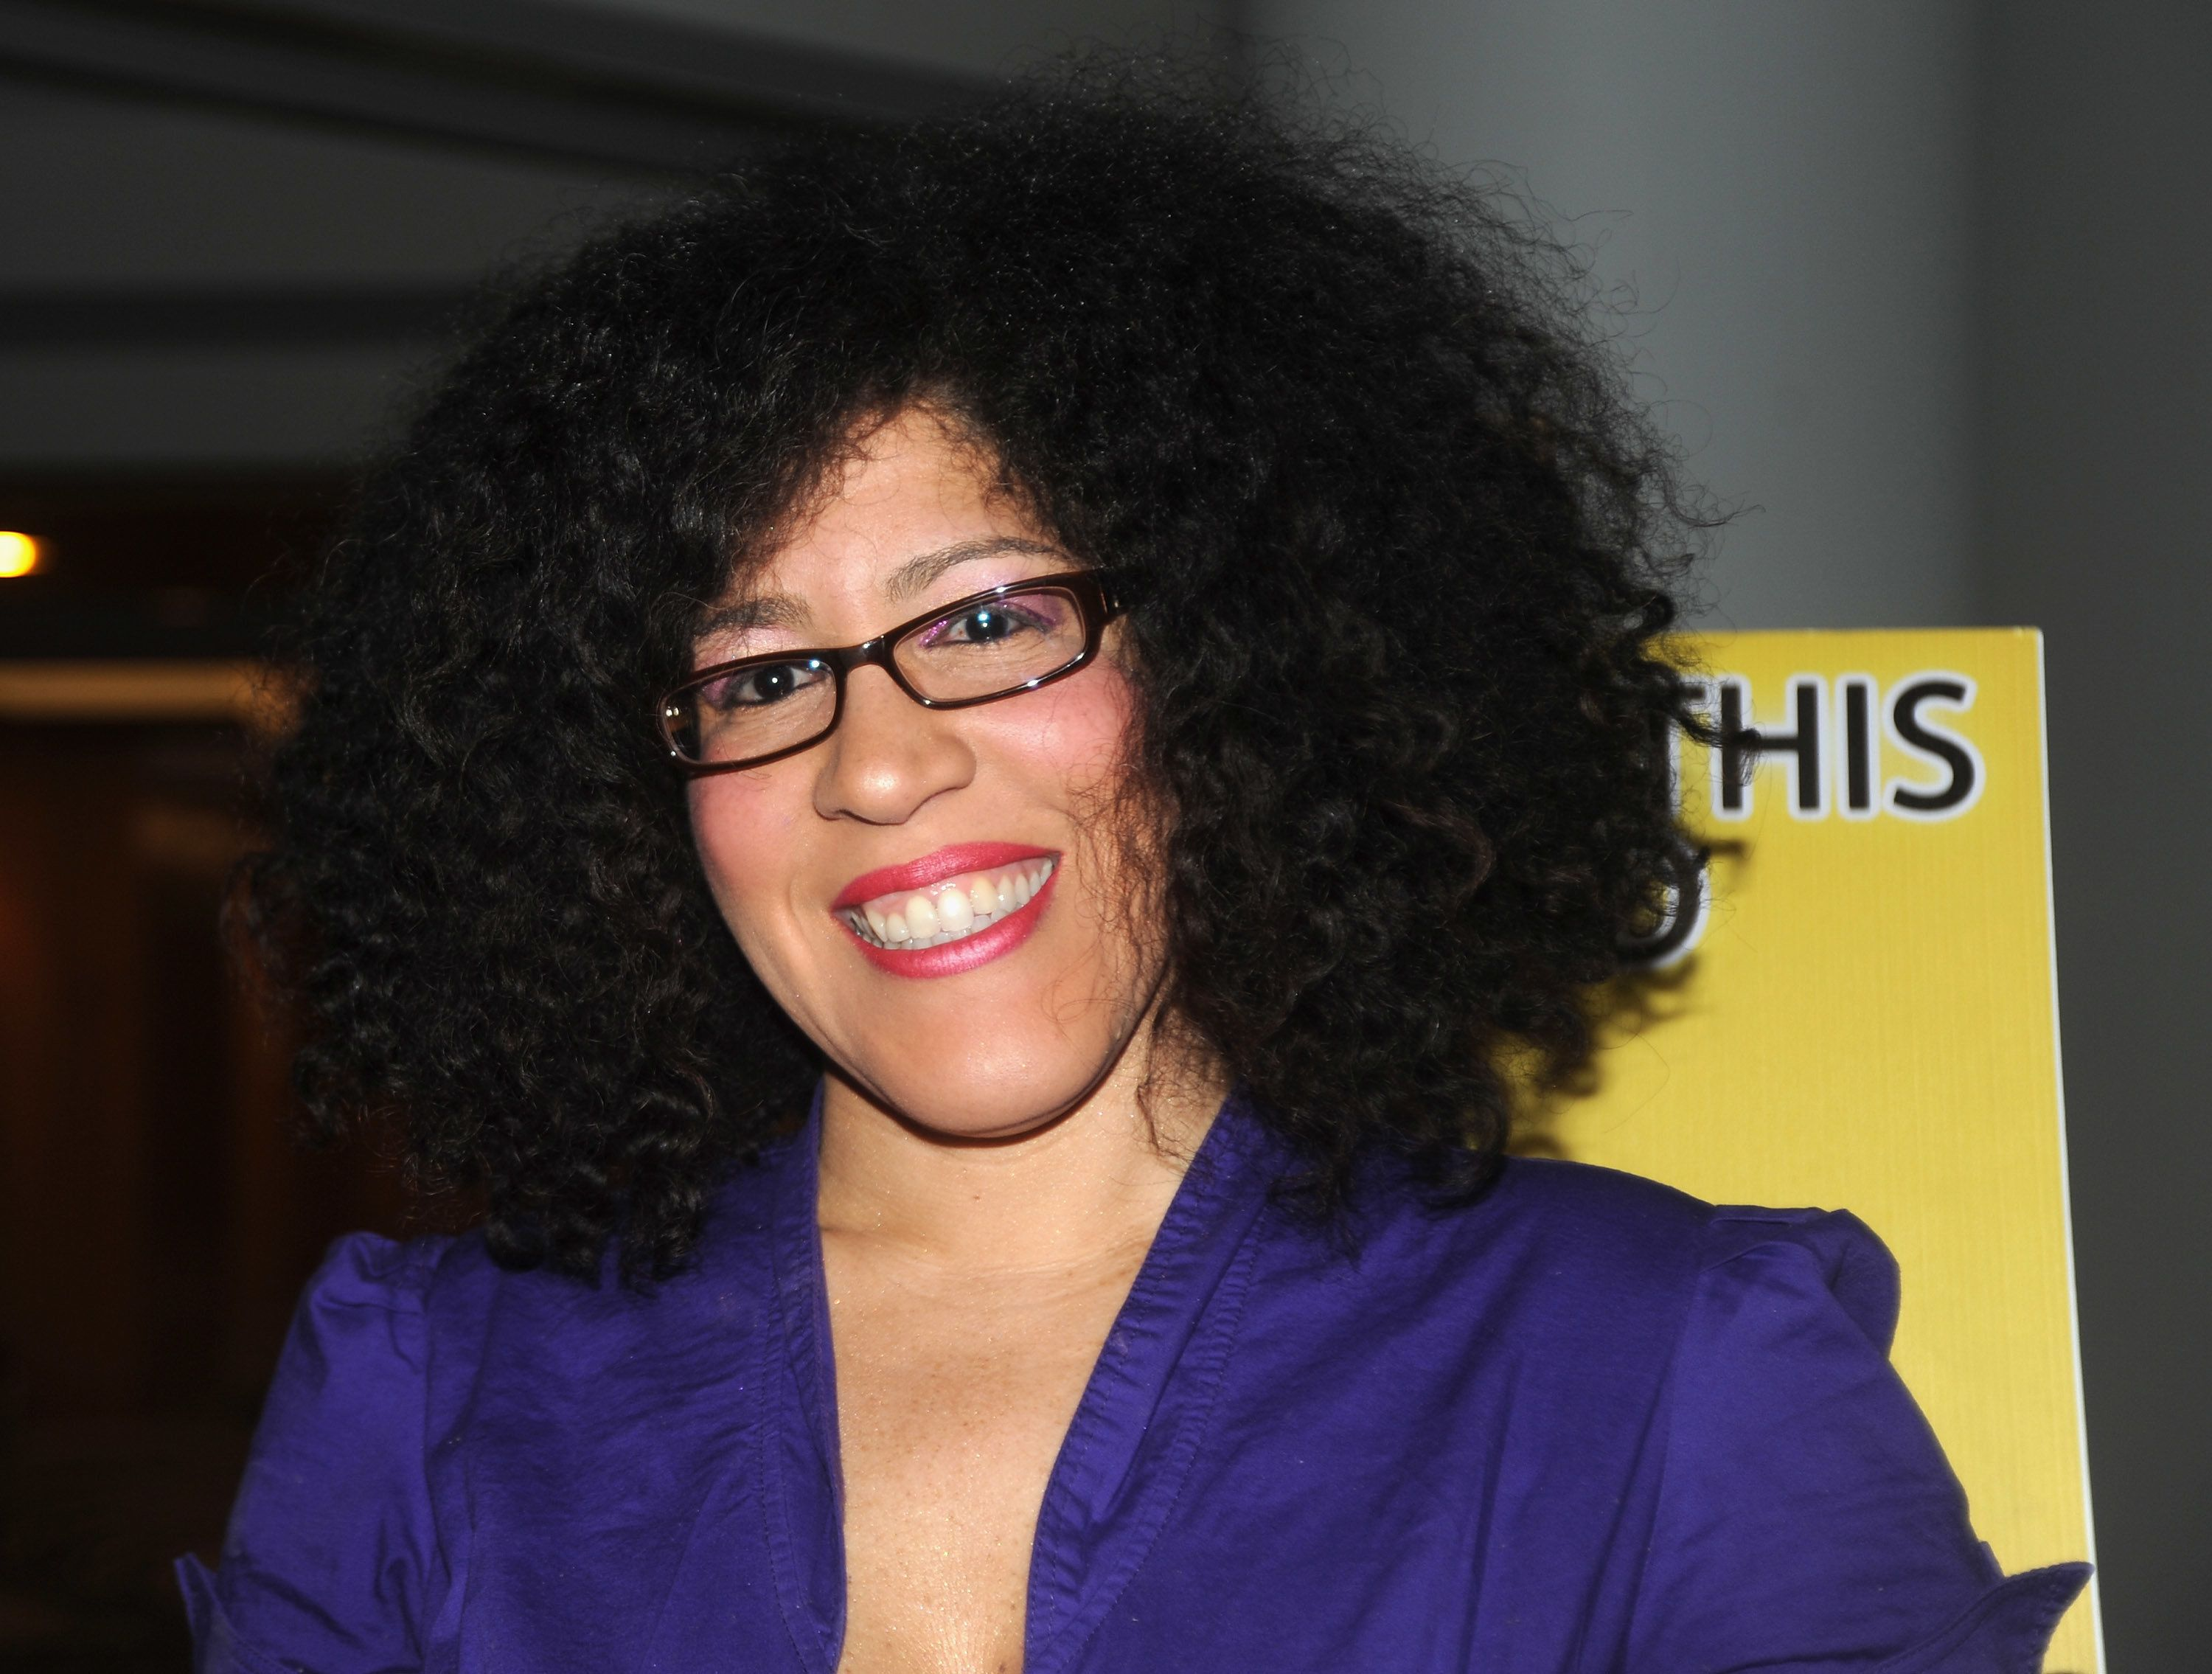 PRINCETON, NJ - MARCH 07:  Rain Pryor performs  at Hyatt Princeton Hotel on March 7, 2015 in Princeton, New Jersey.  (Photo by Bobby Bank/WireImage)